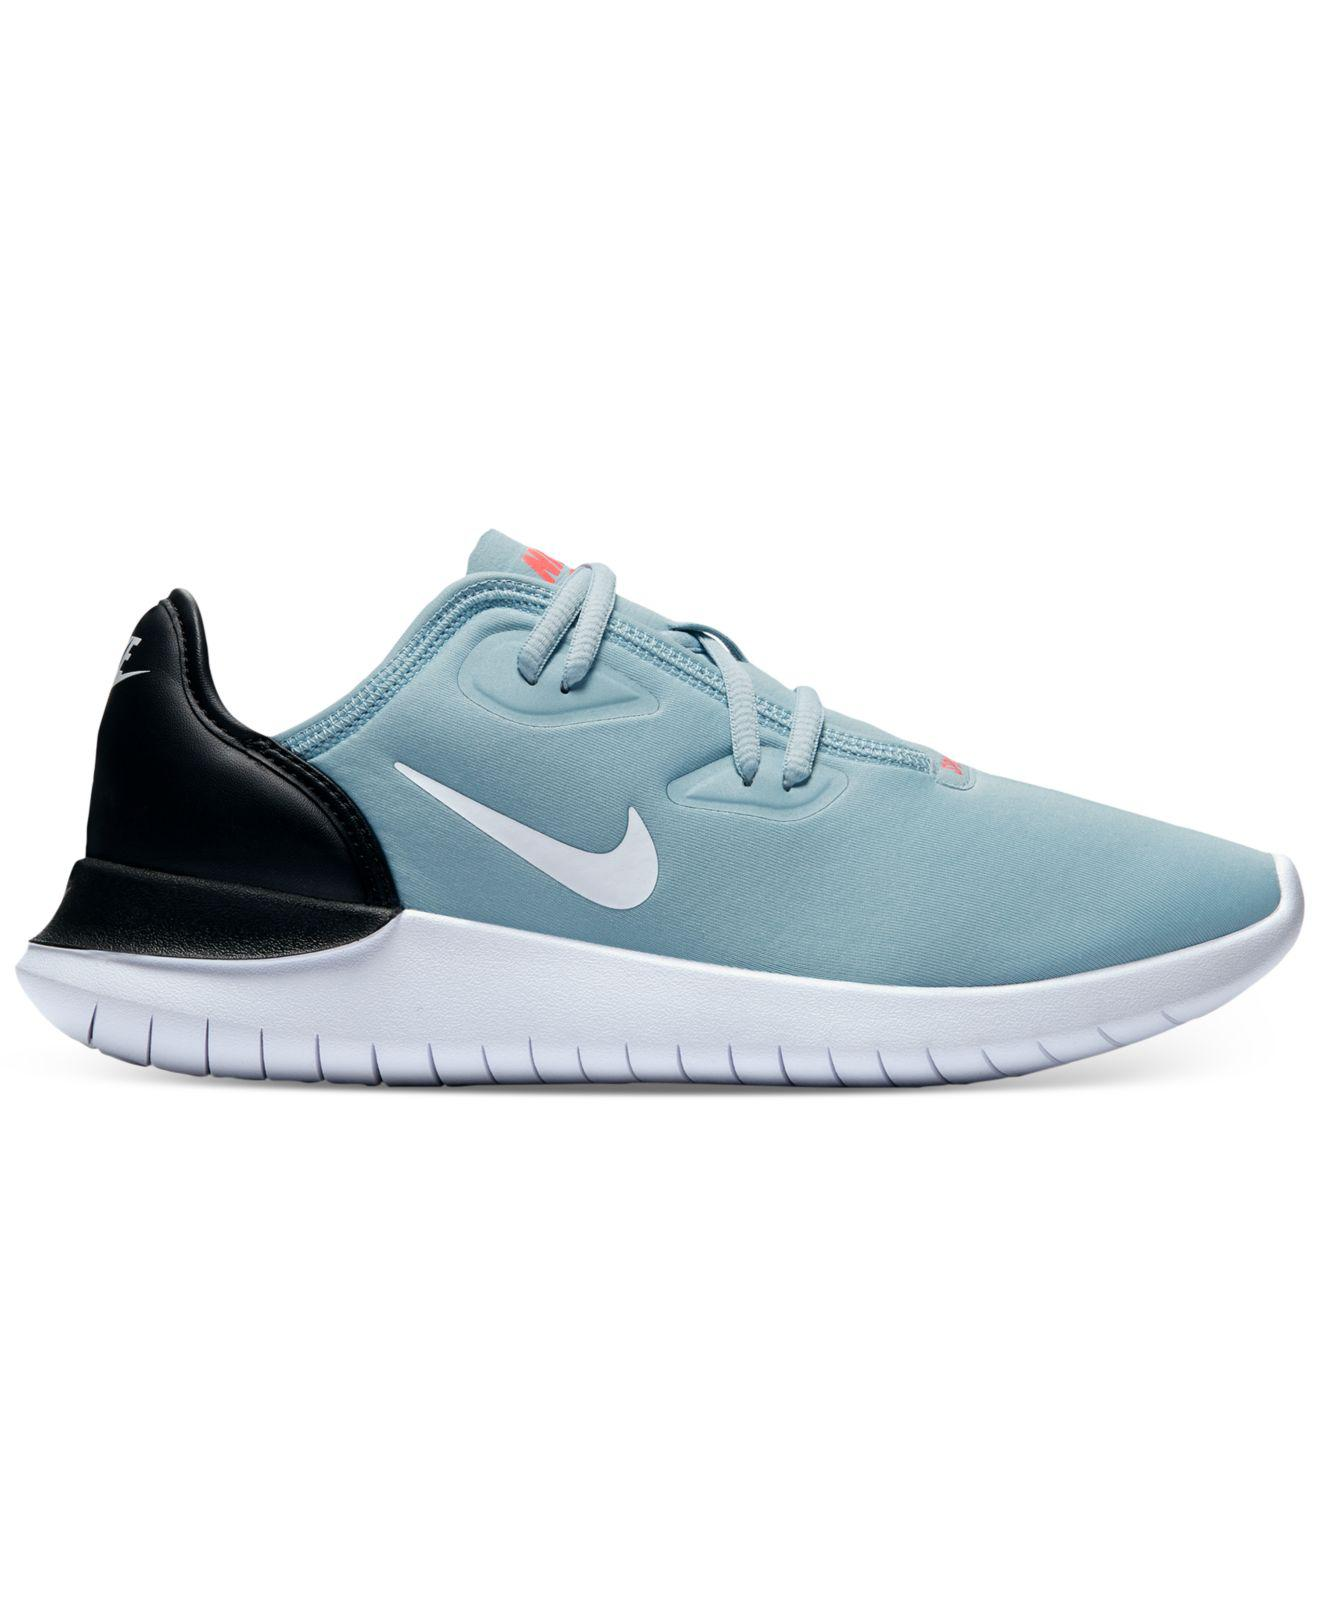 Nike. Women's Blue Hakata Casual Sneakers From Finish Line